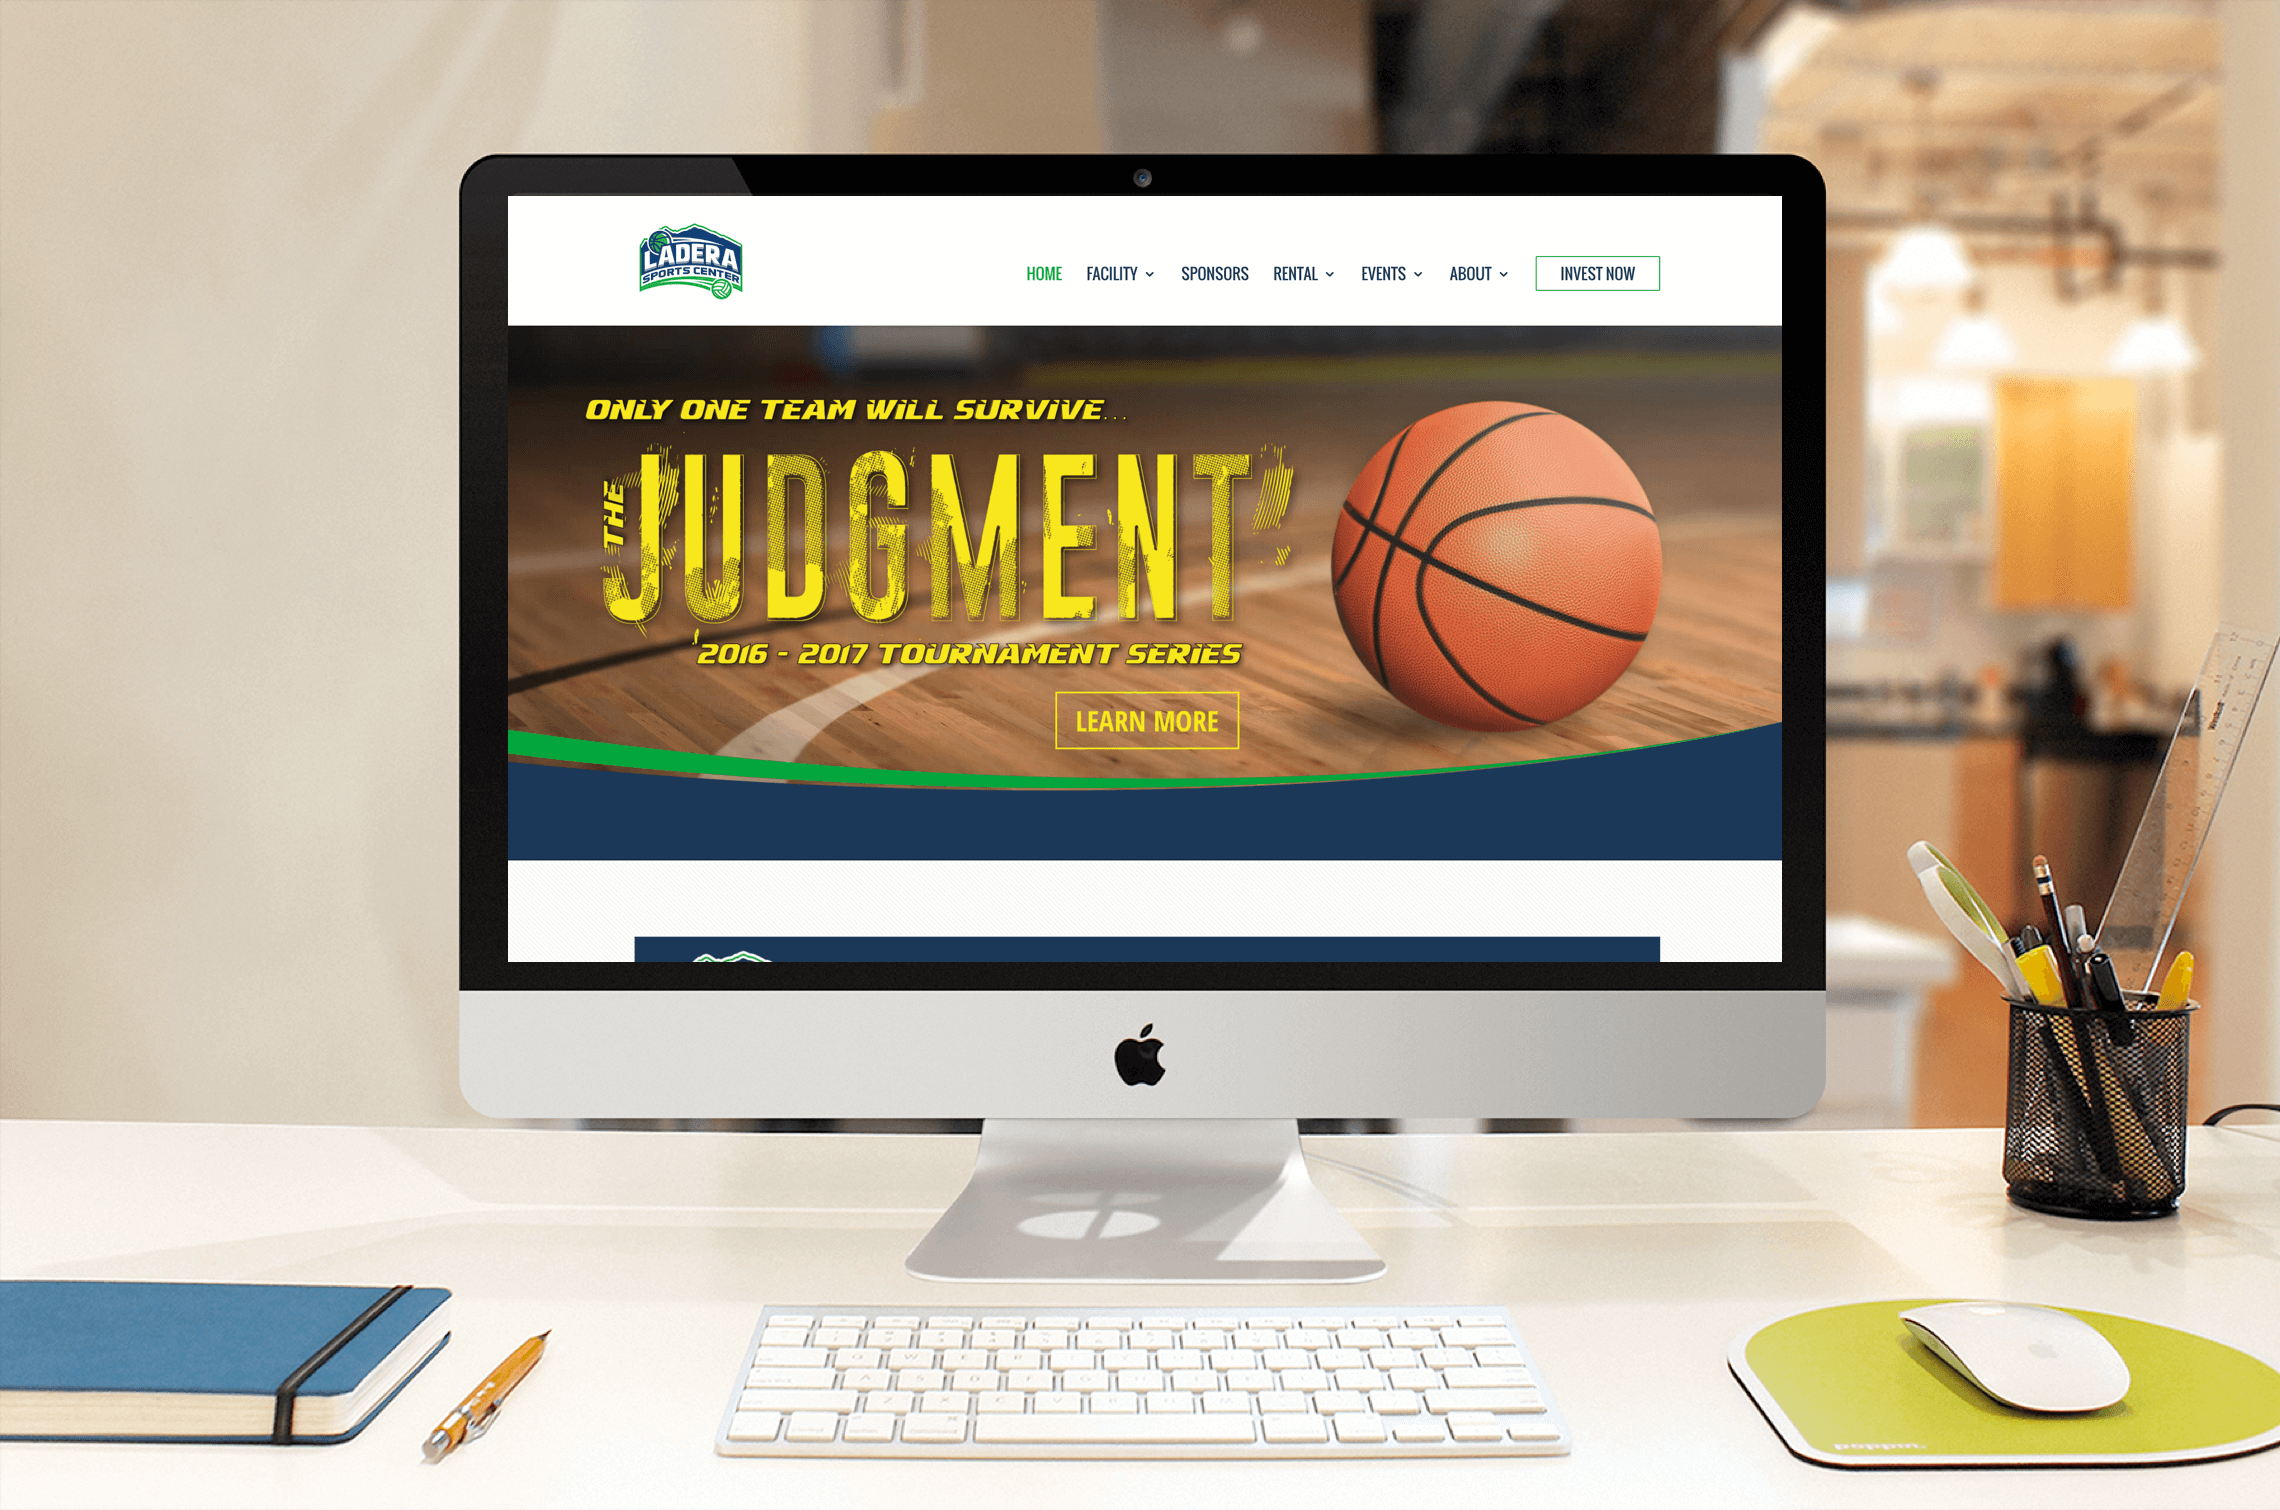 wordpress-ladera-sports-center-1-fi